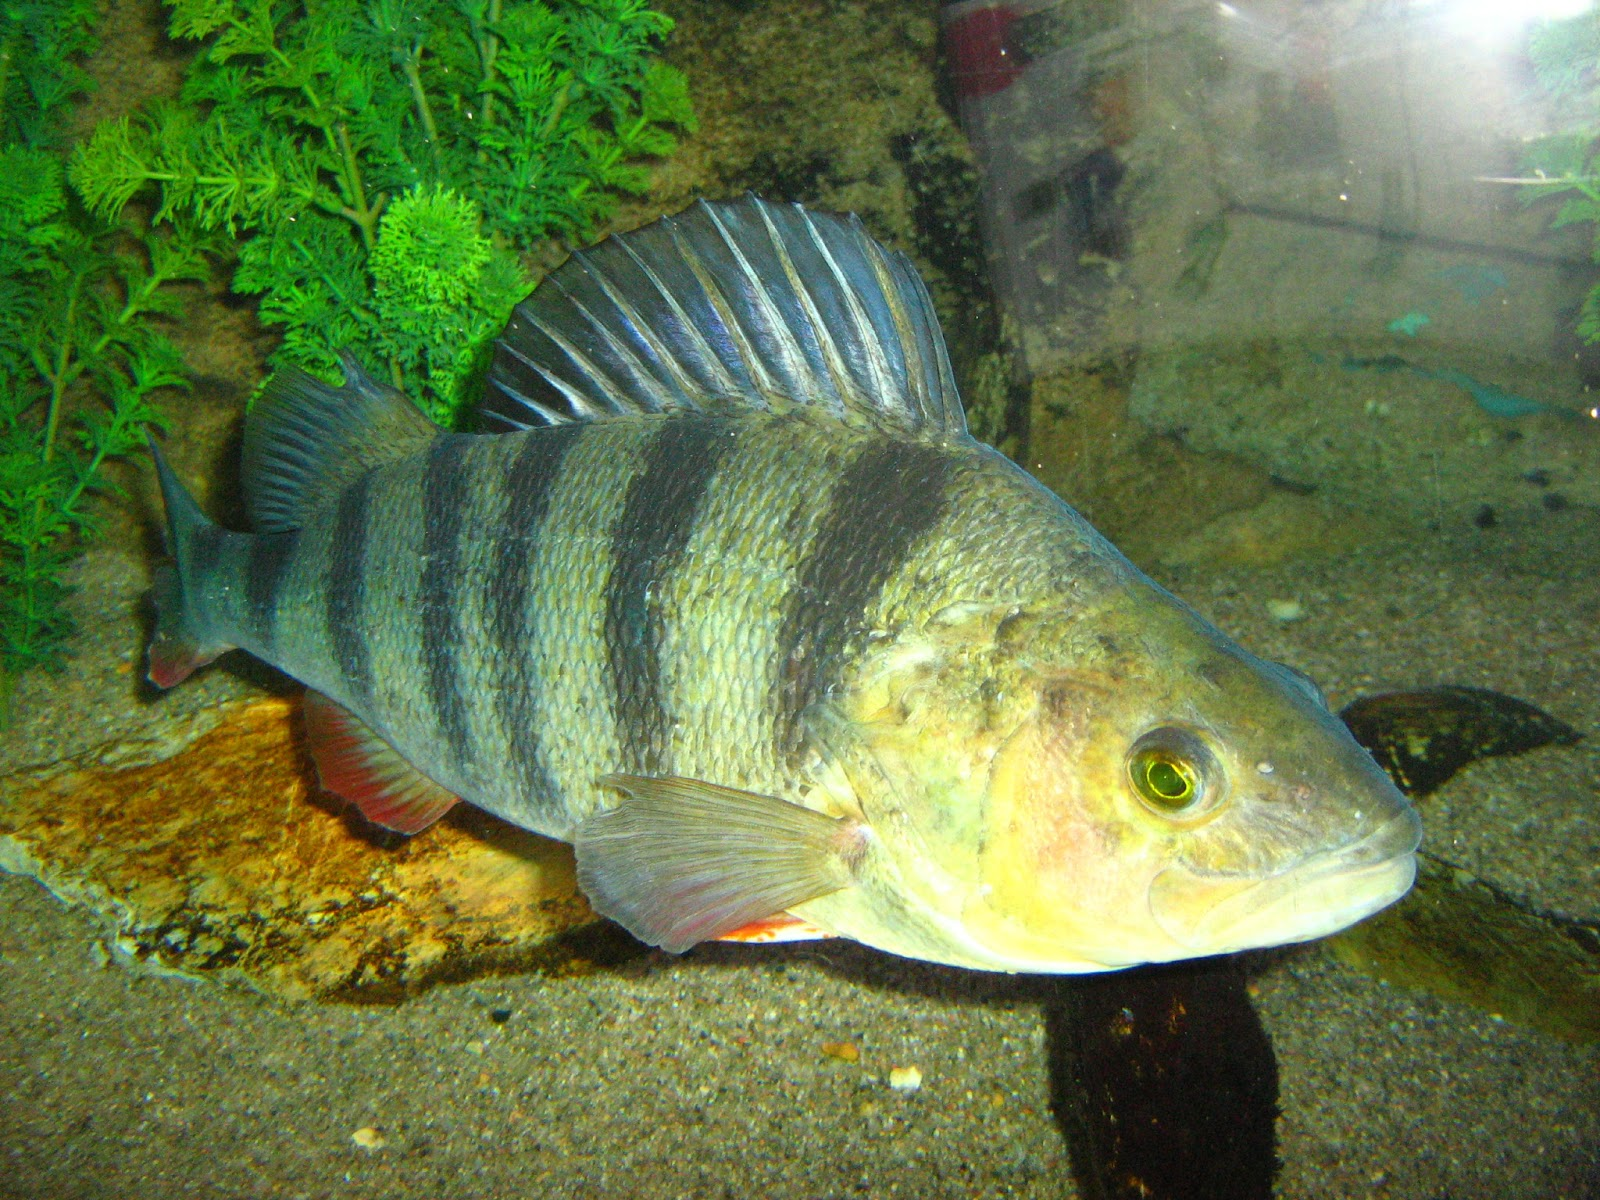 Redfin perch in the aquarium wallpaper